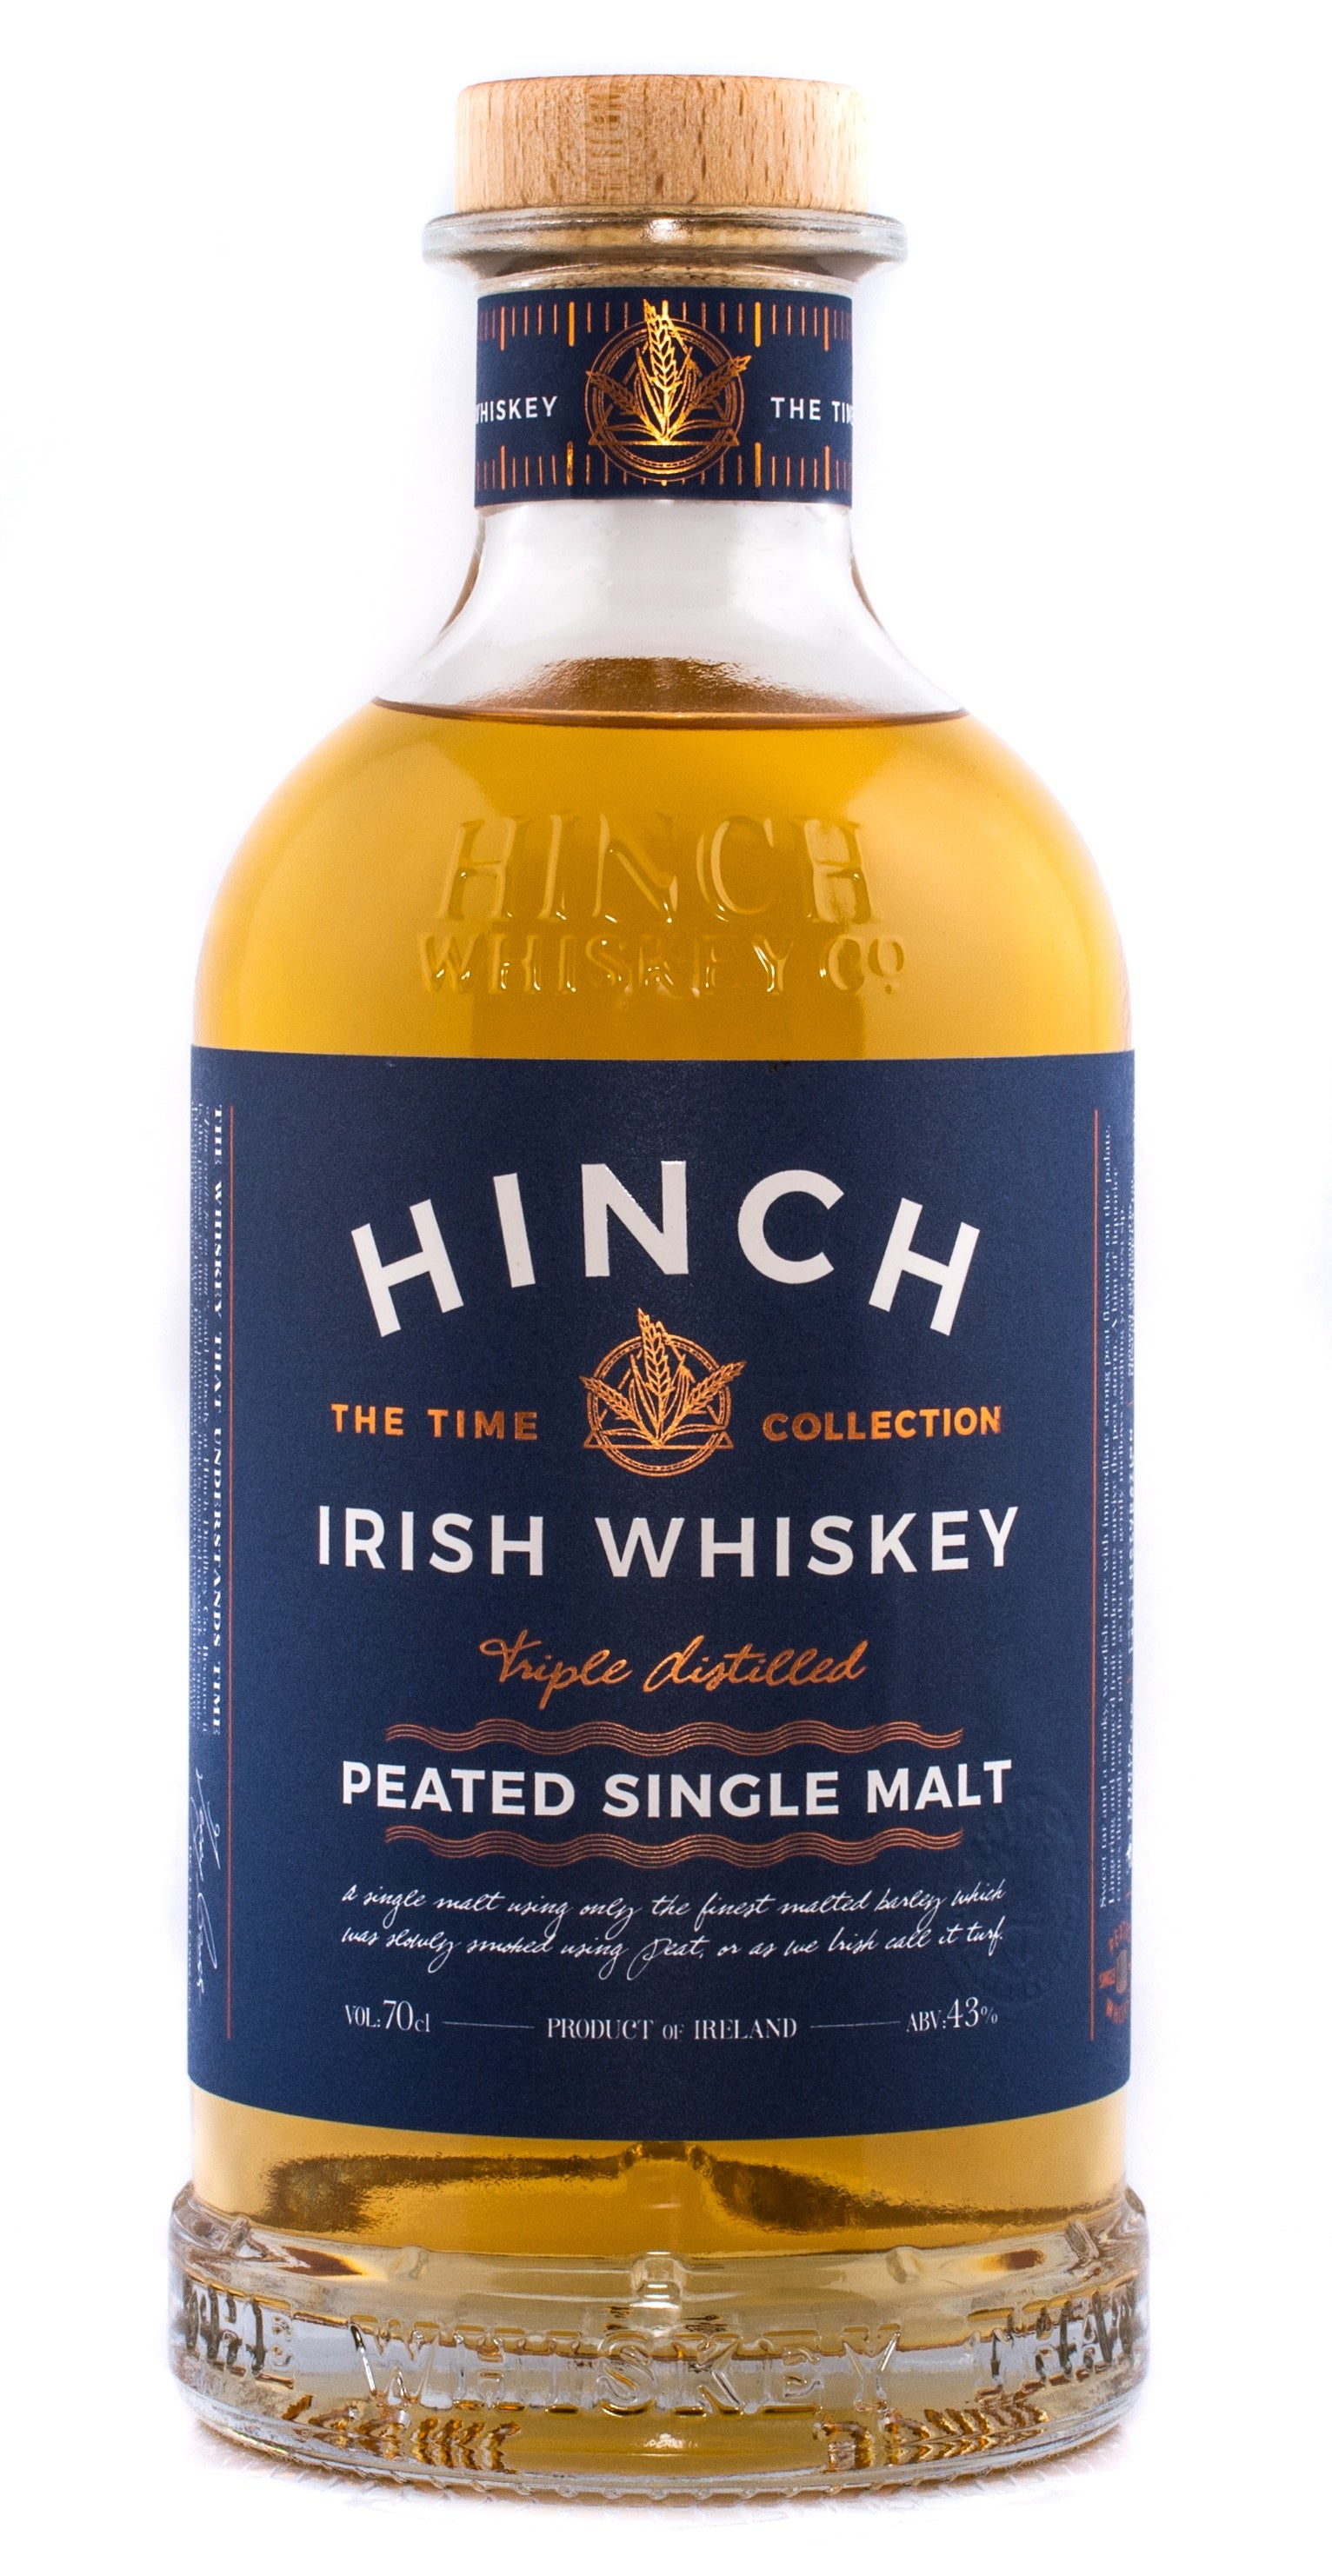 Hinch Peated Single Malt 43% abv 70cl